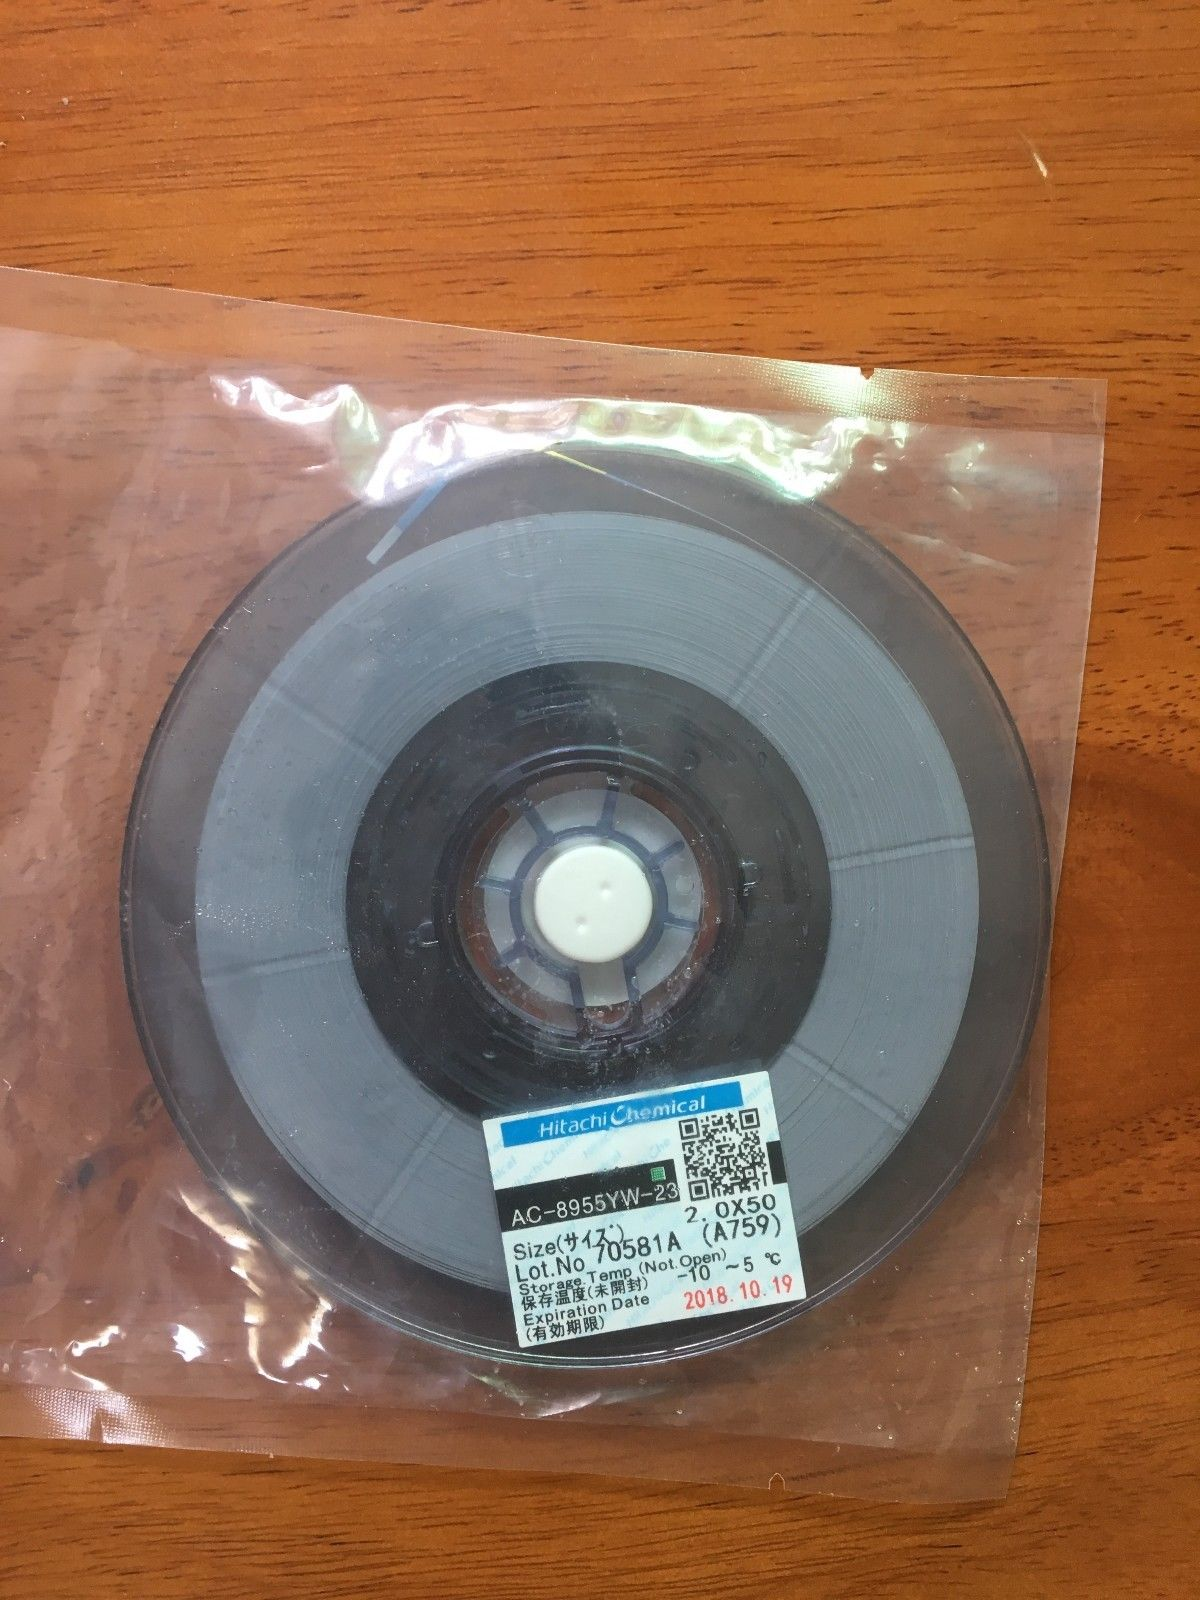 Hitachi AC-8955YW-23 1.5MM*50M TAPE Anisotropic Conductor NEWEST DATE